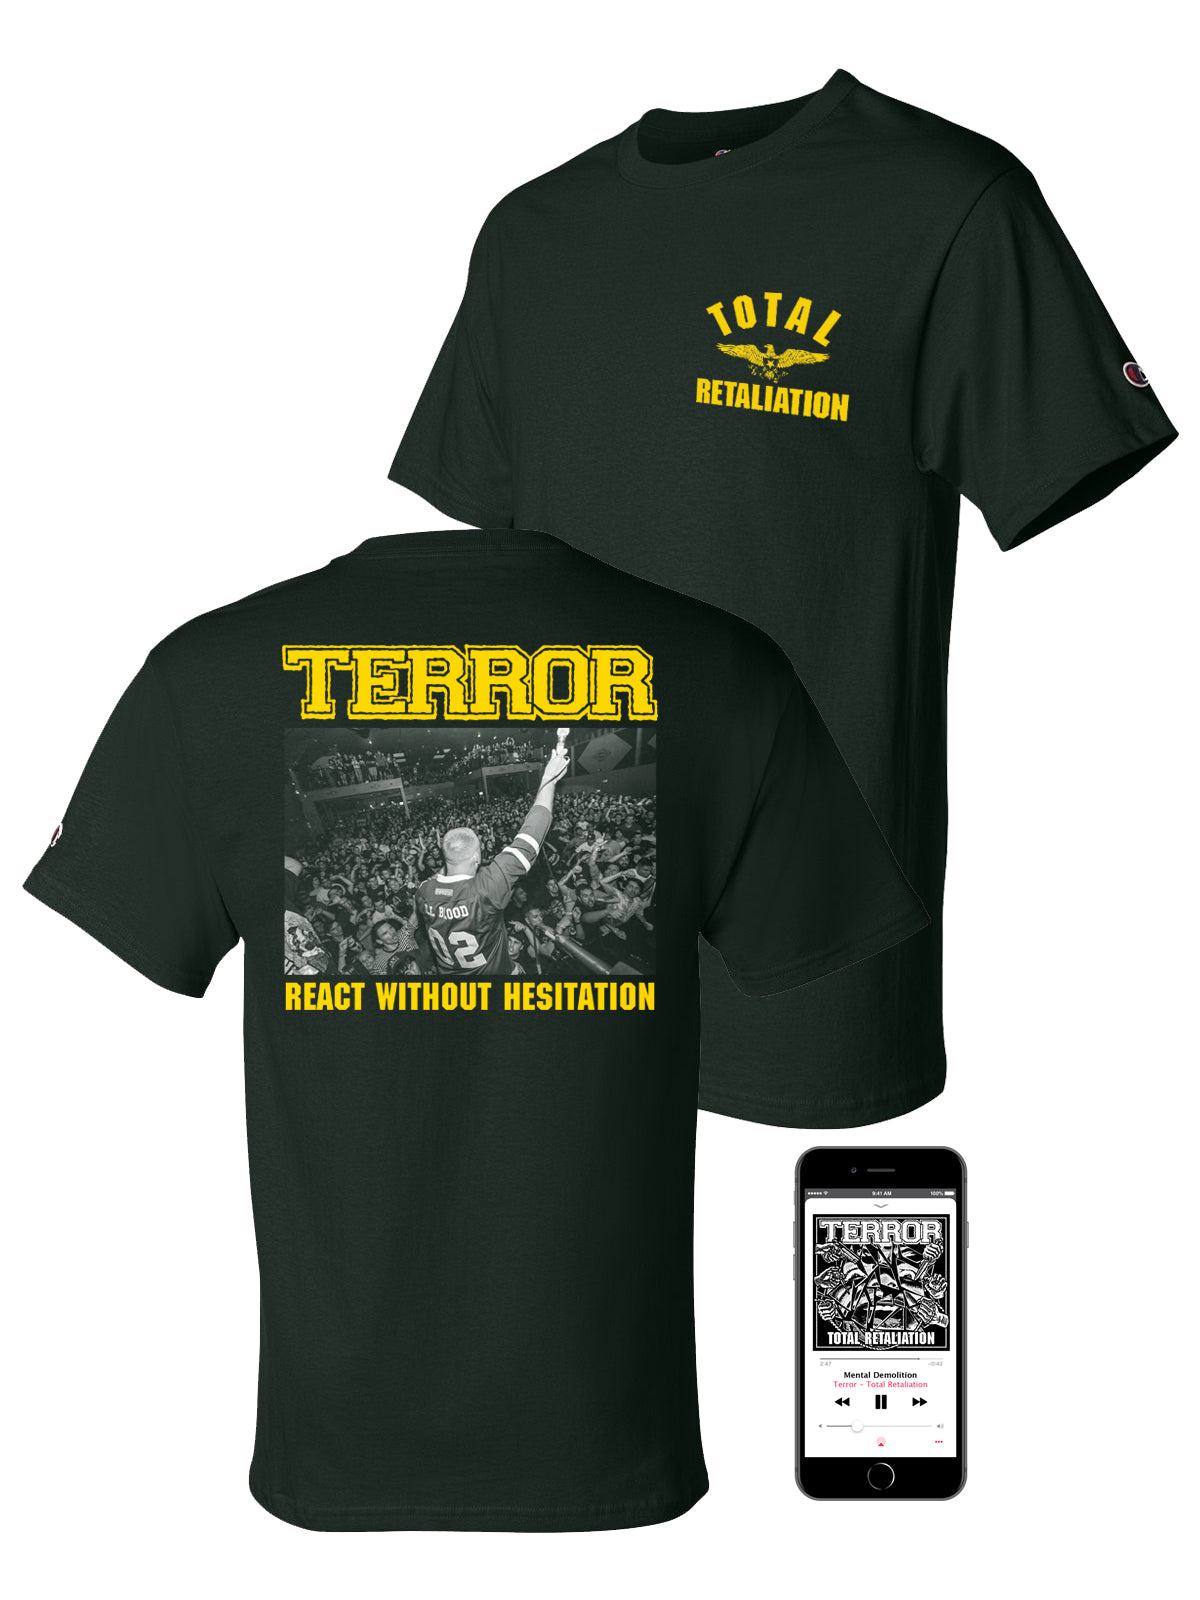 Terror - Total Retaliation Champion Shirt Bundle - Merch Limited